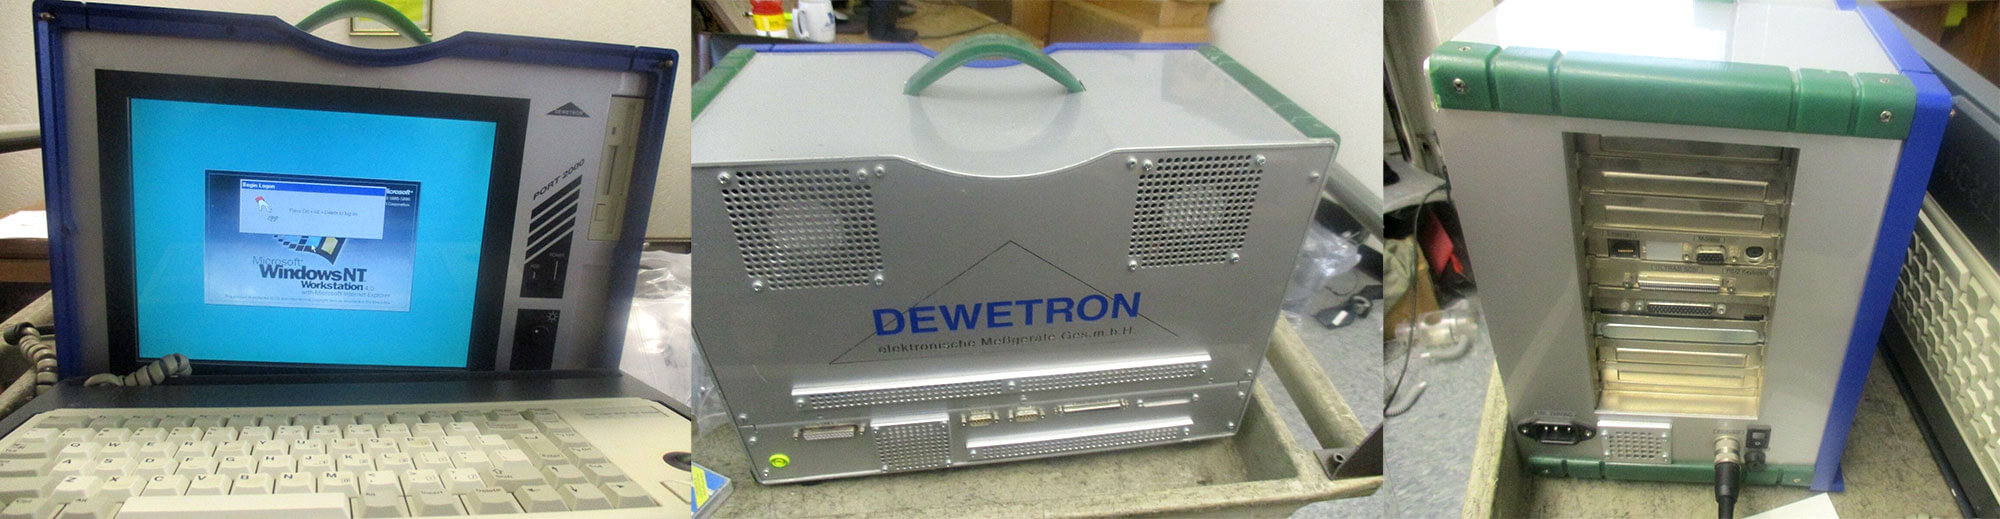 The Dewetron PORT-2000 modular data acquisition system